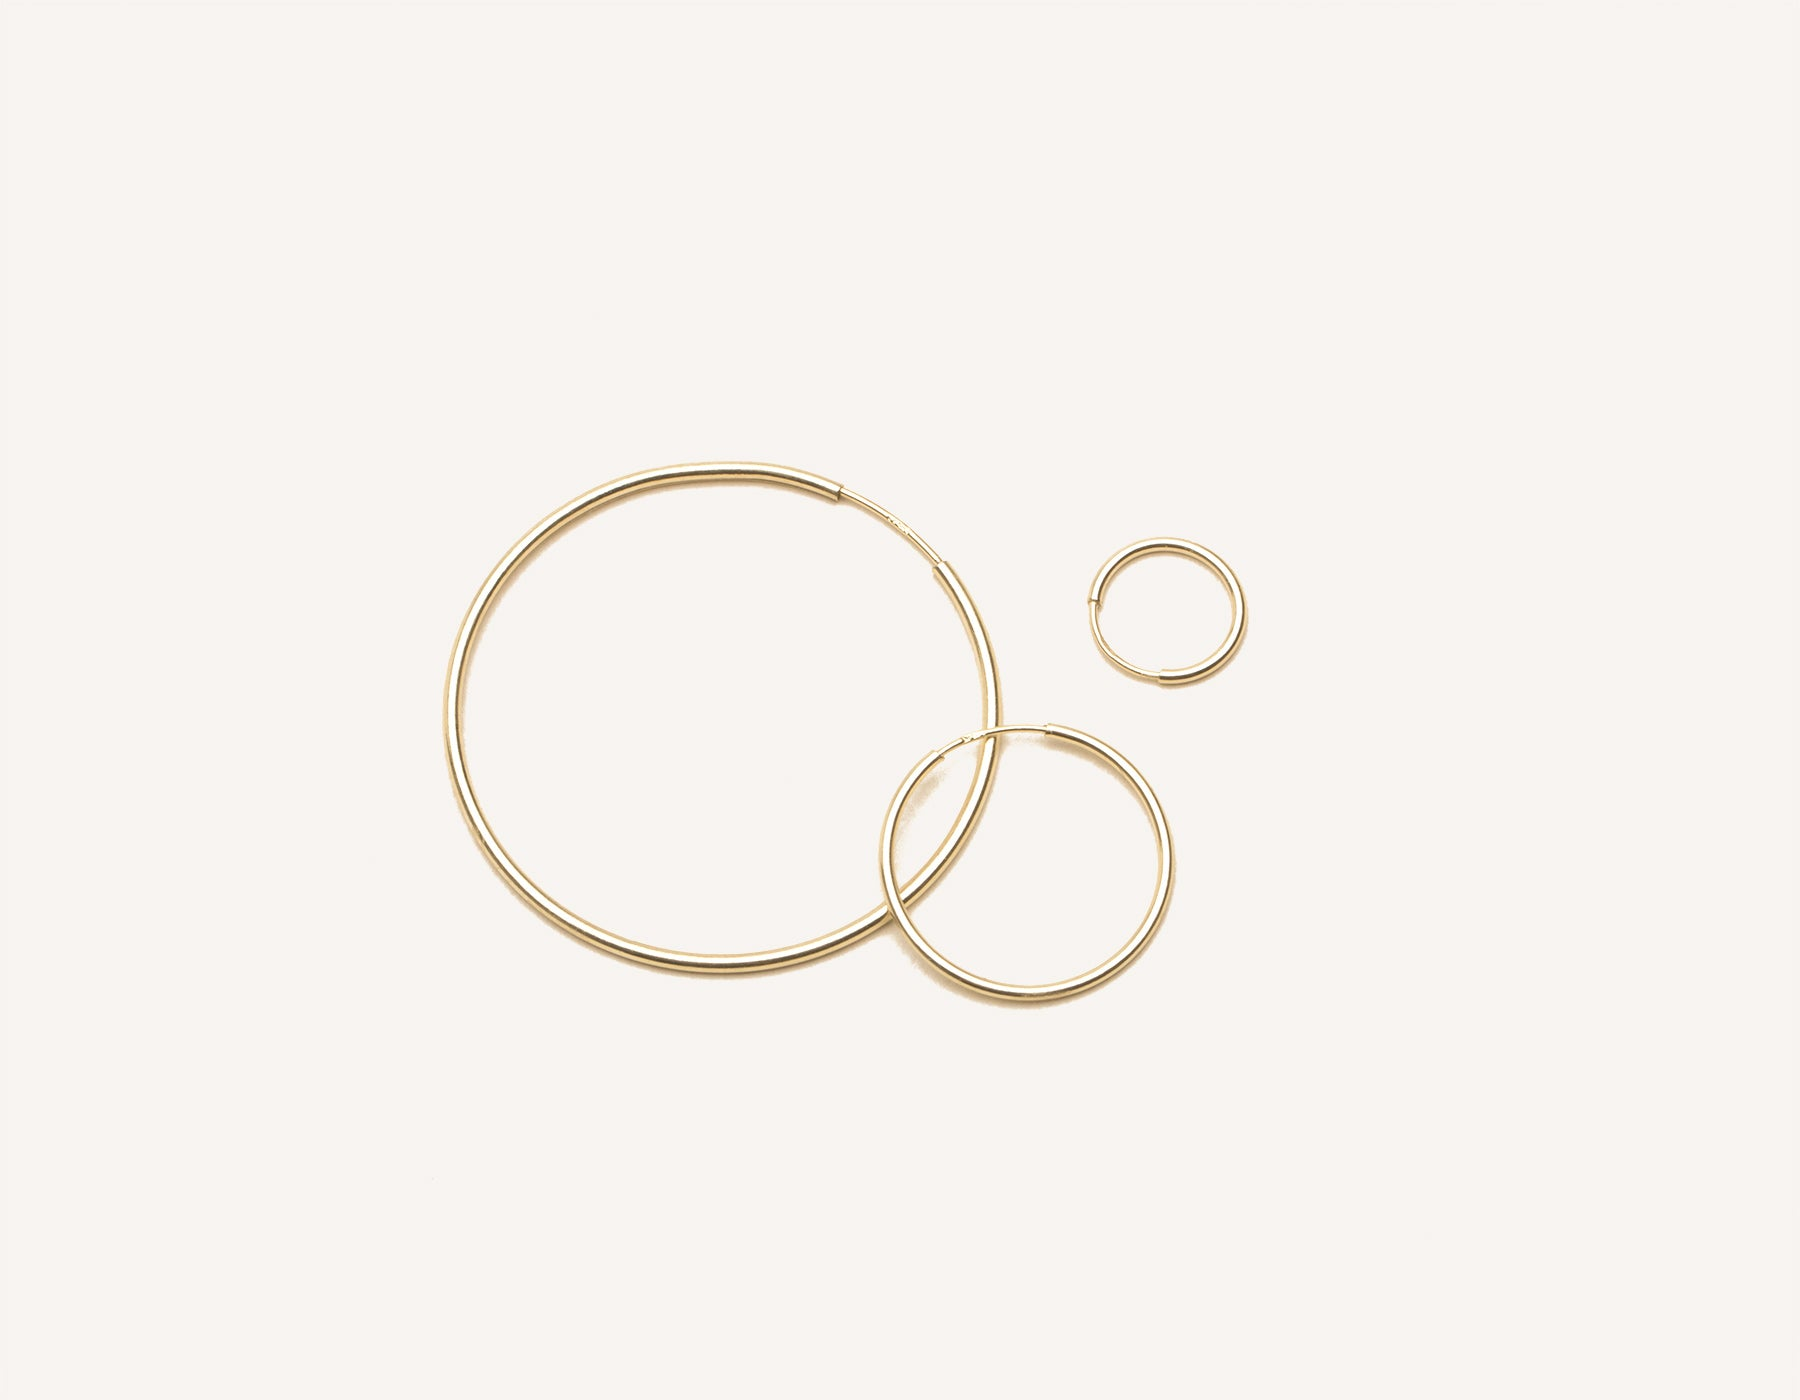 modern minimalist Lightweight Hoop earrings 14k solid gold Vrai & Oro sustainable jewelry, 14K Yellow Gold